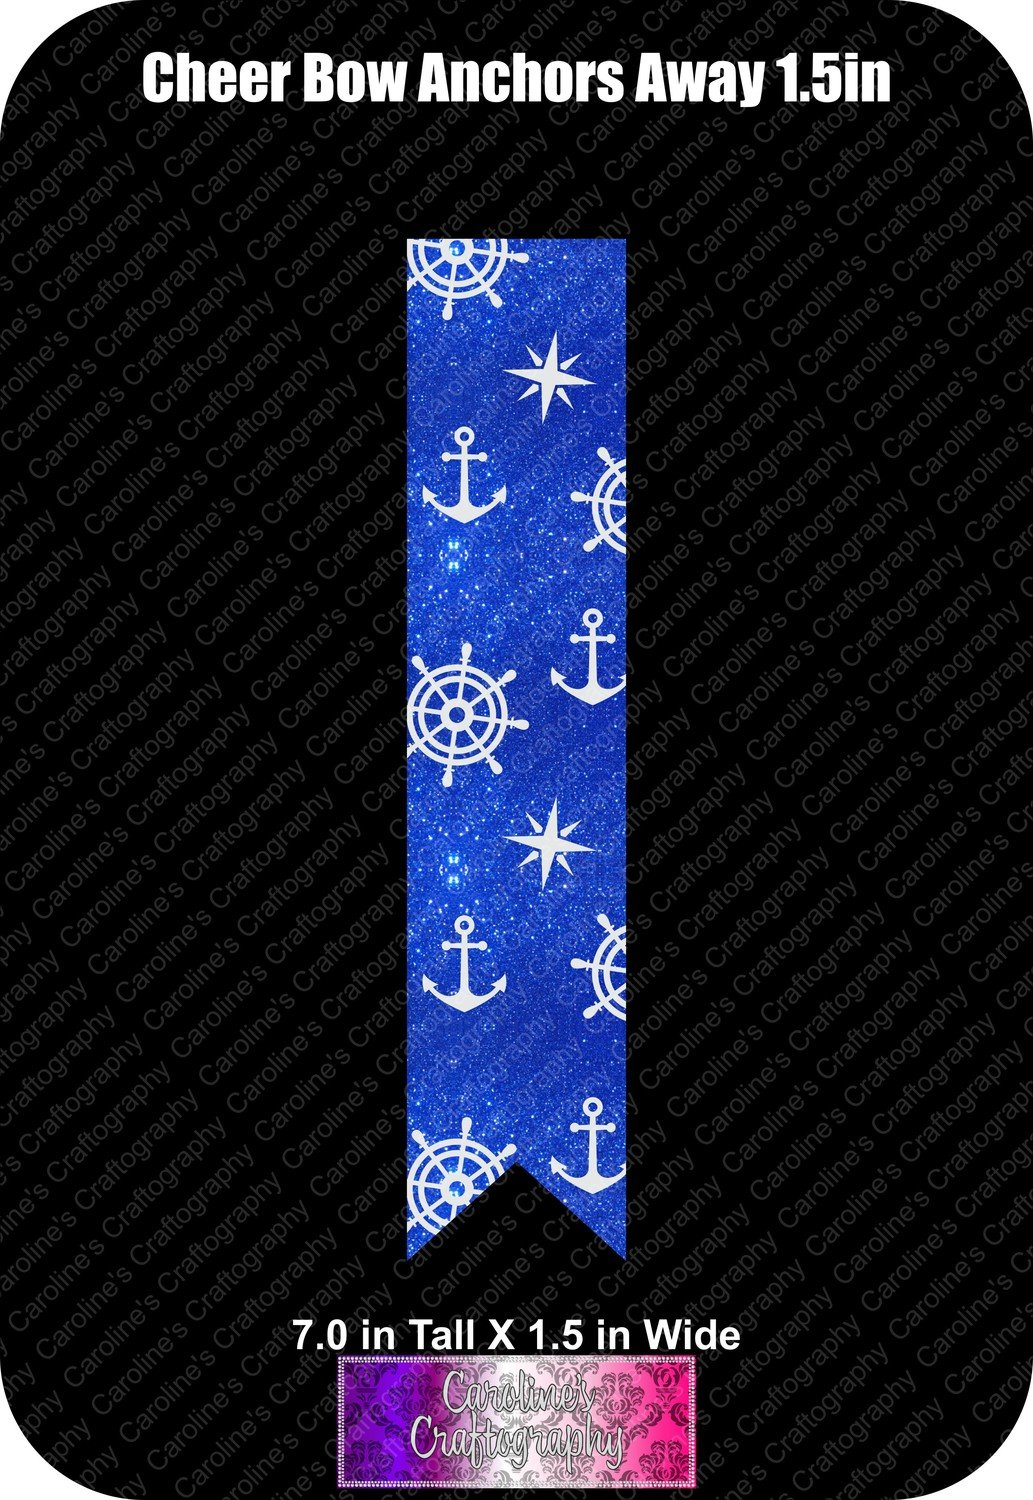 Anchors Away 1.5in Cheer Bow Vinyl